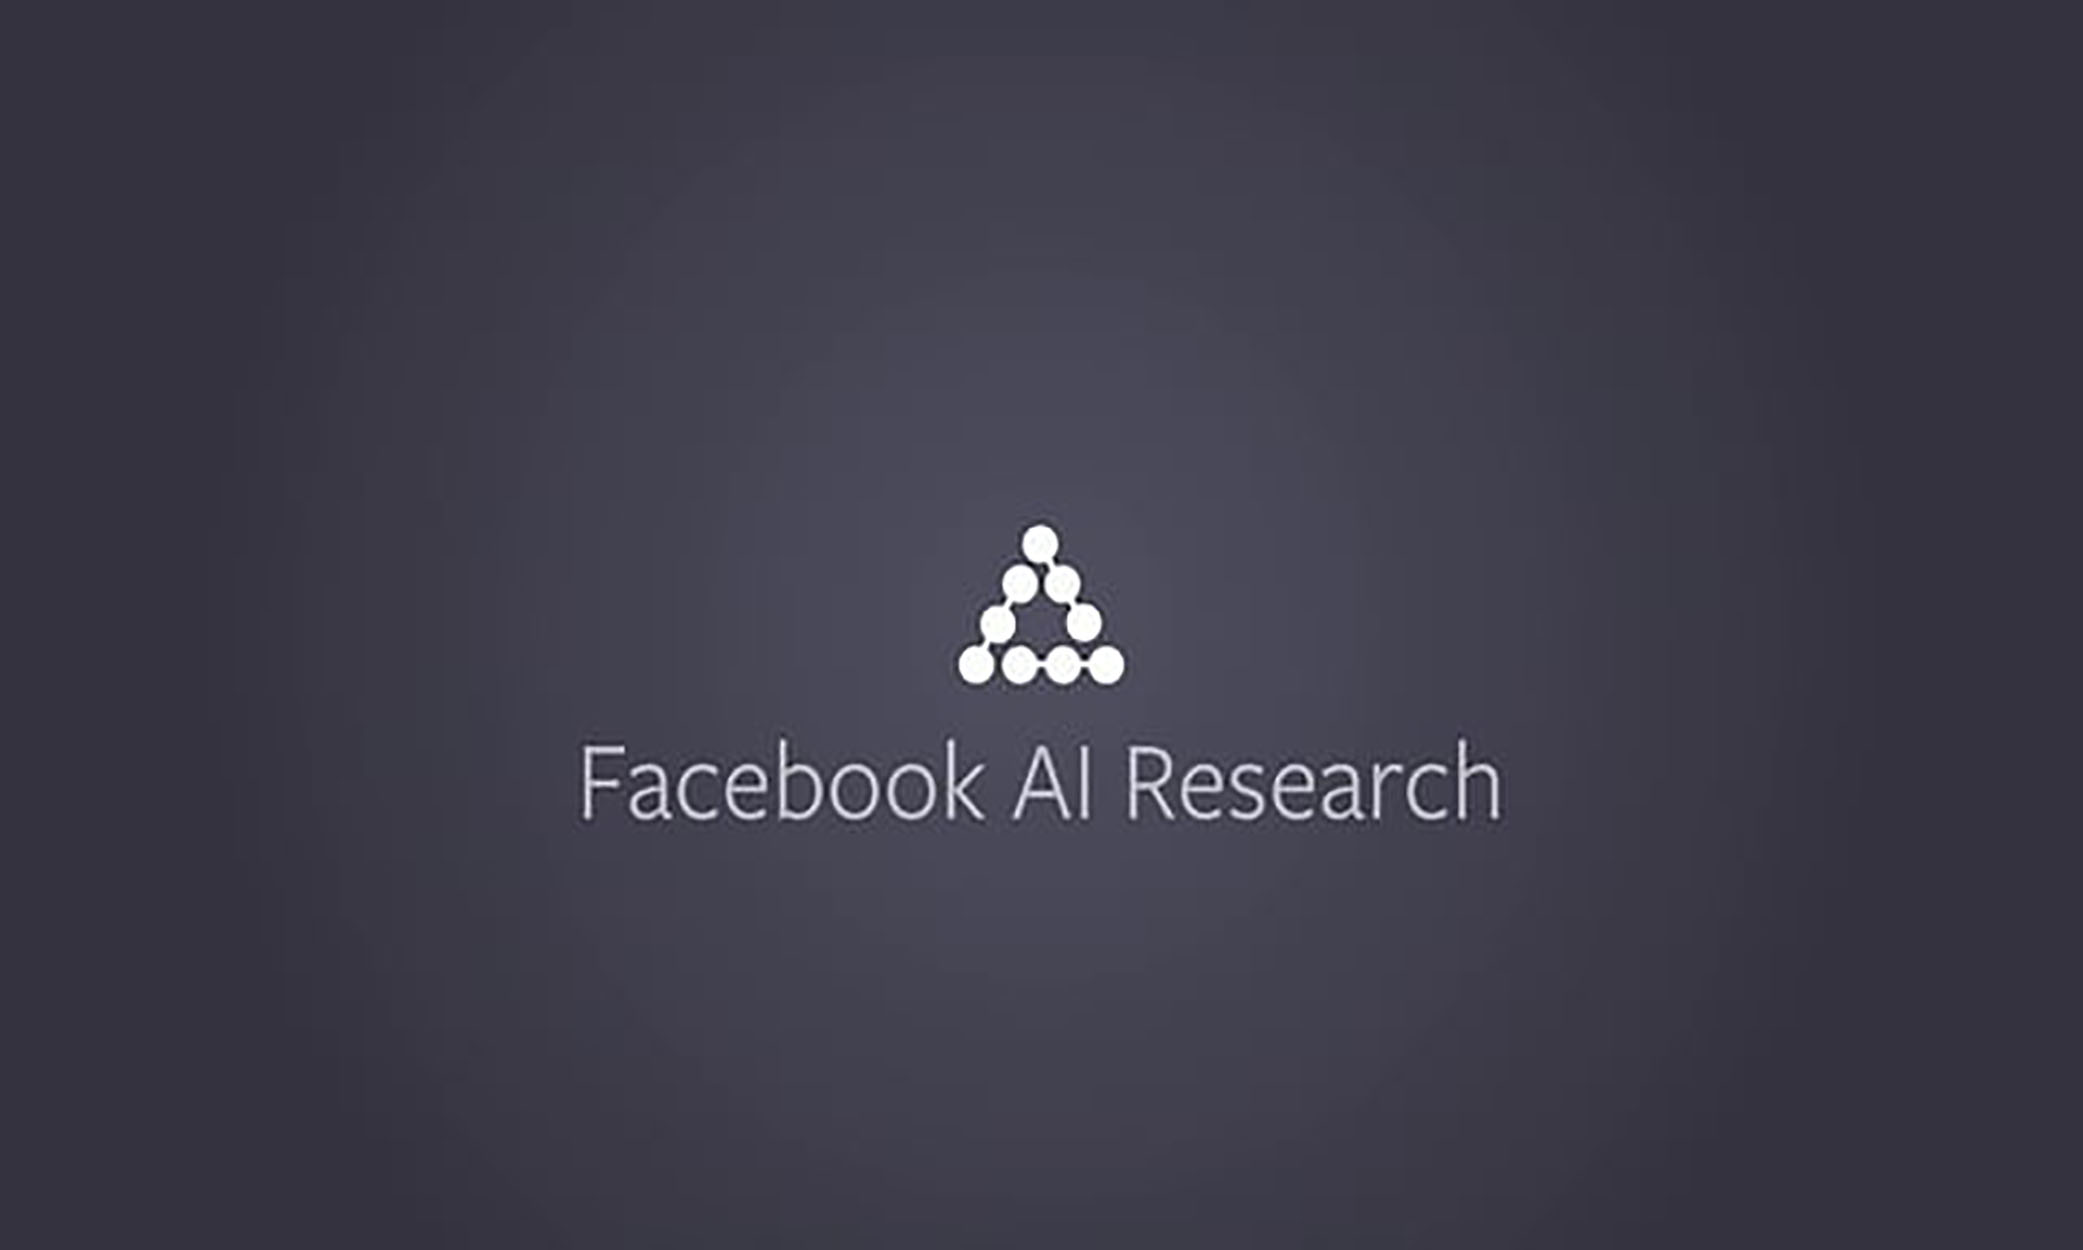 Facebook Researchers Built New AI That Can Identify Gender Bias In Text